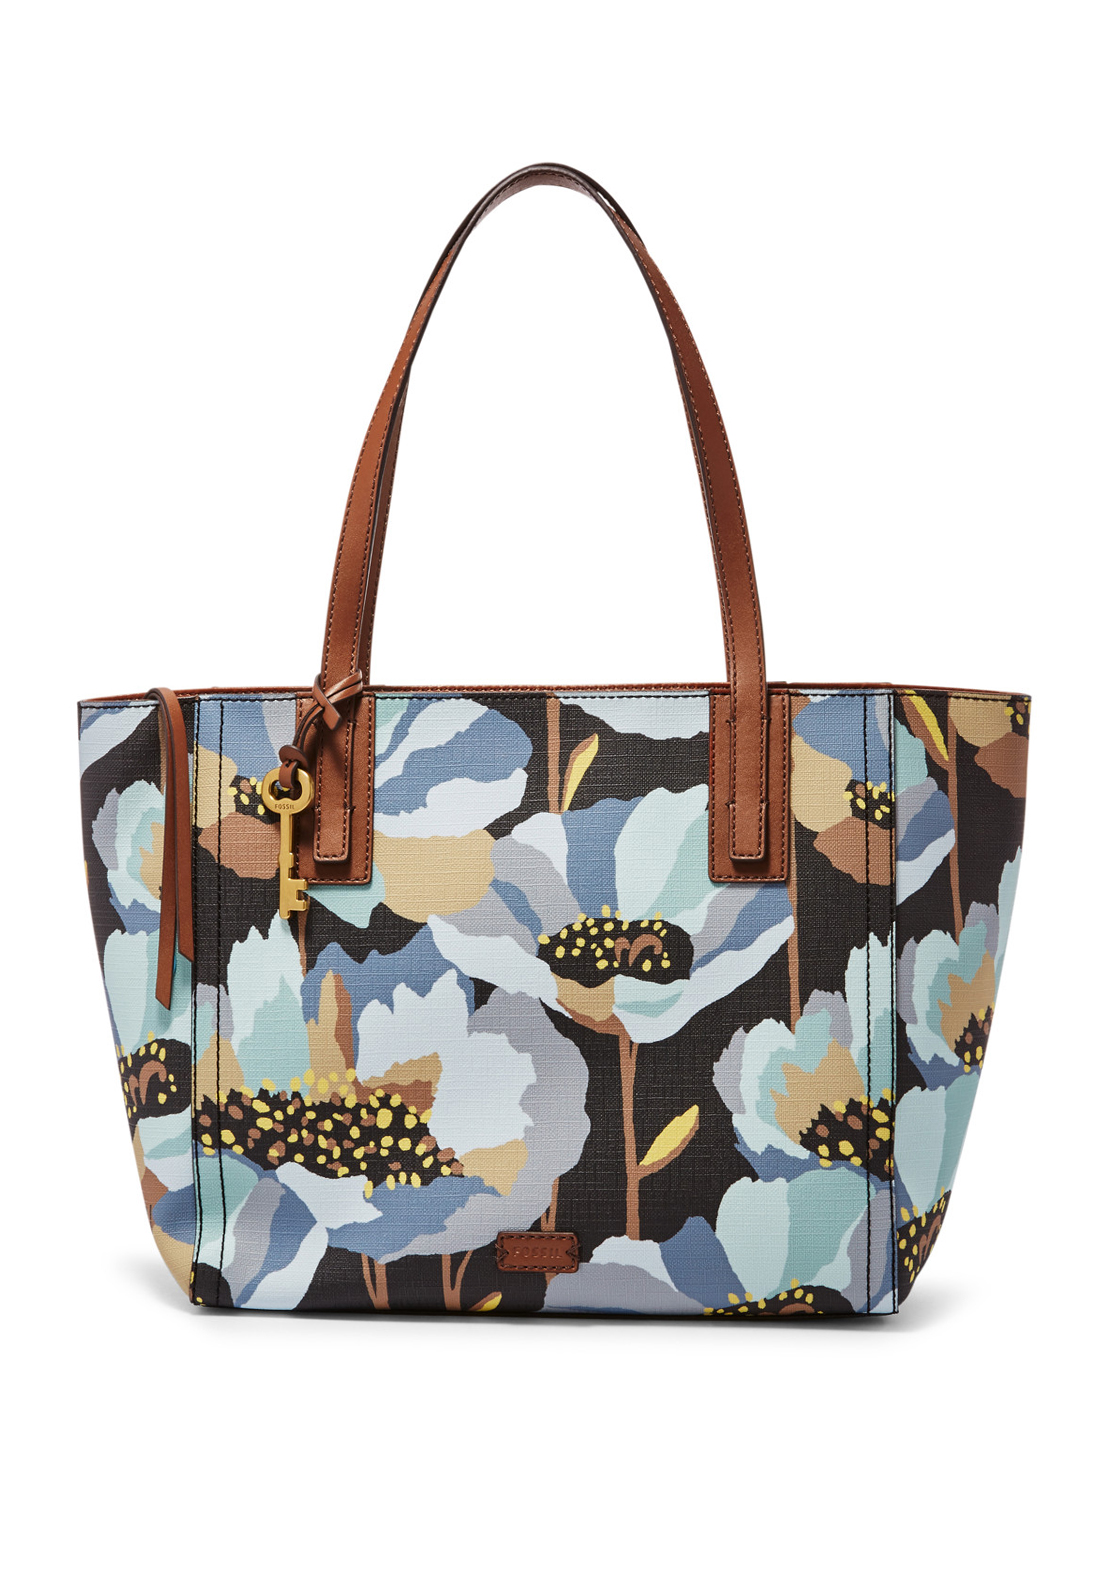 Fossil Emma Floral Print Faux Leather Tote Bag, Dark Floral